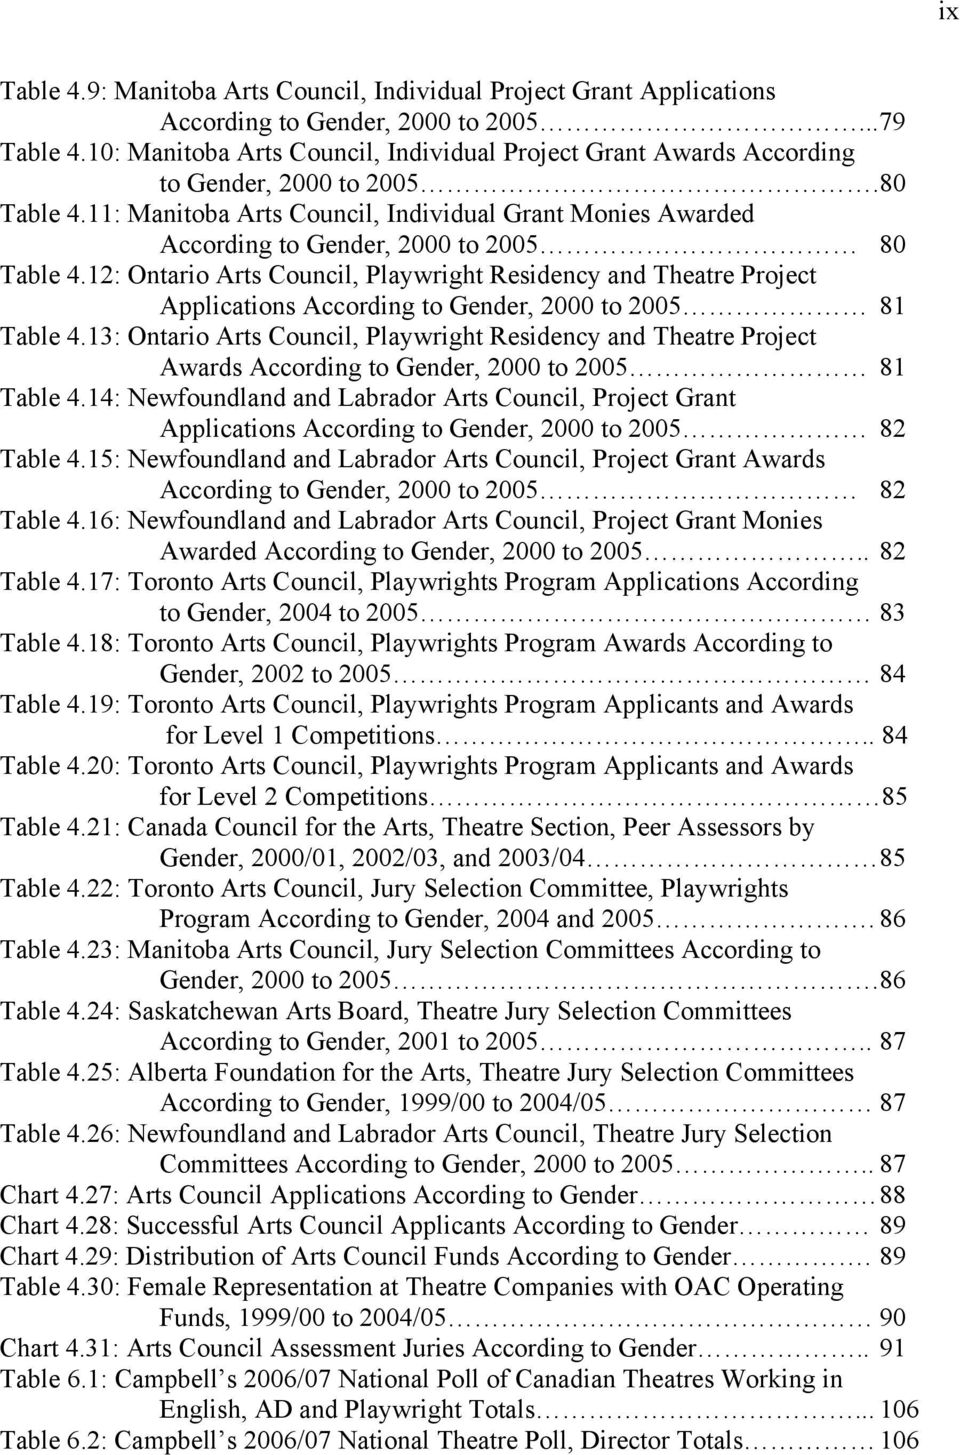 11: Manitoba Arts Council, Individual Grant Monies Awarded According to Gender, 2000 to 2005 80 Table 4.